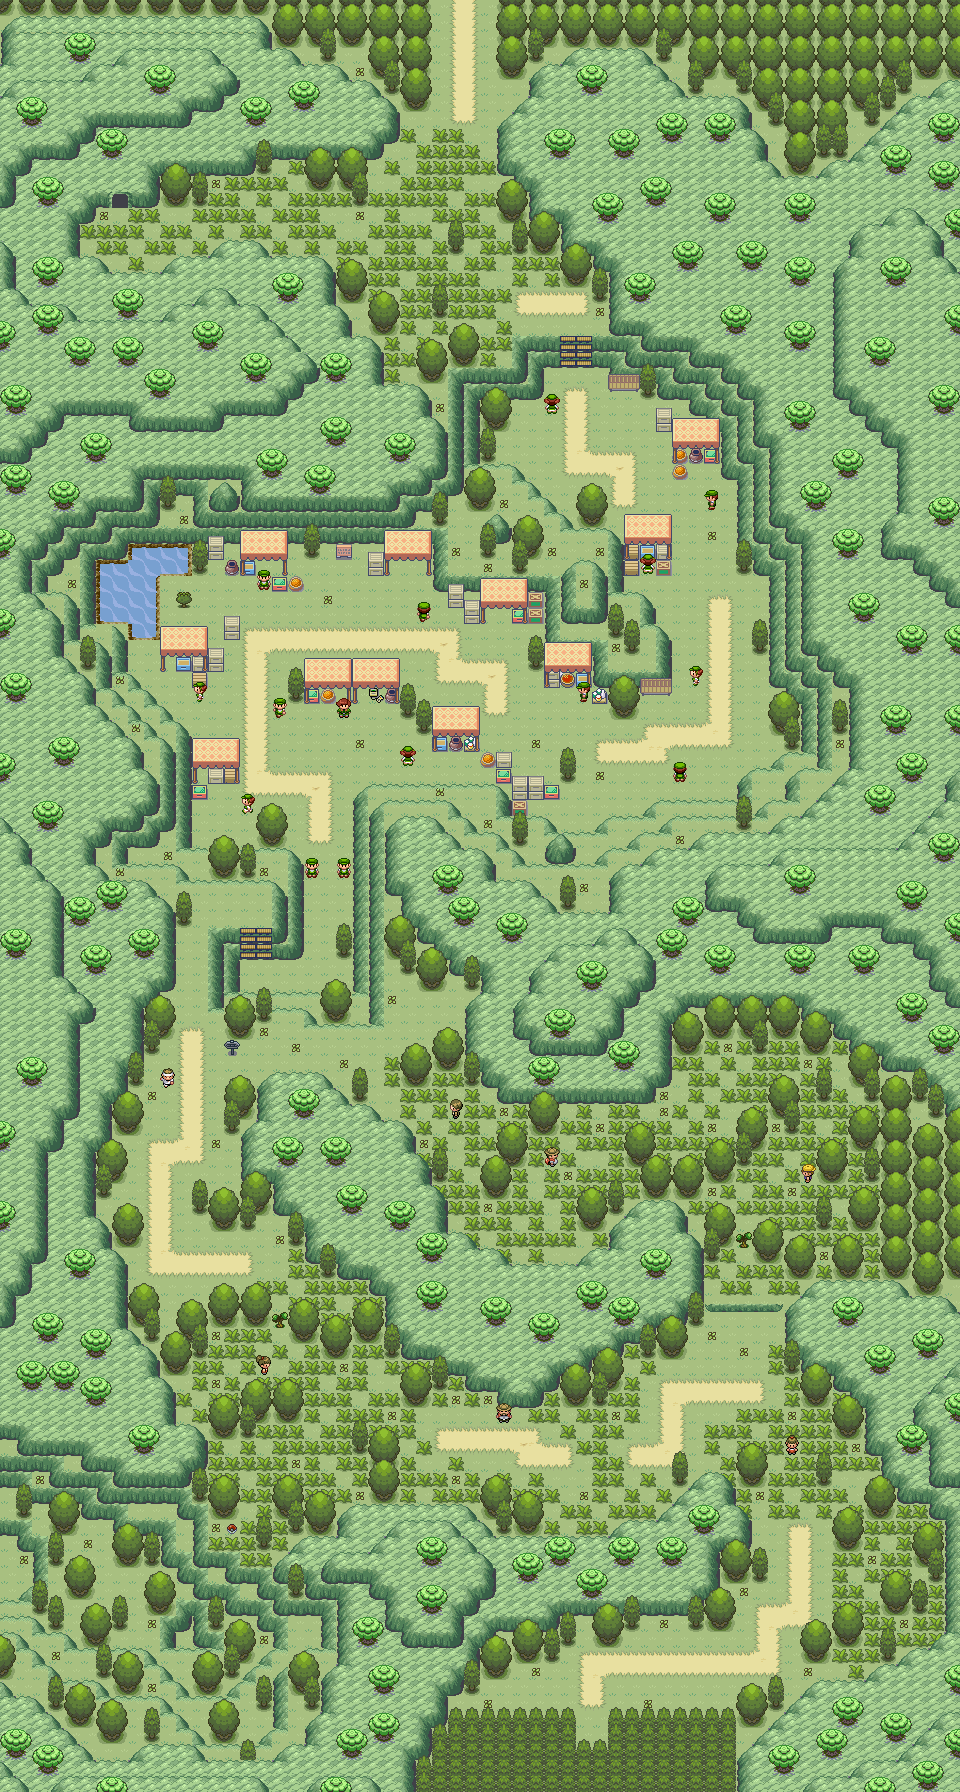 Pokémon-Map: Route 18